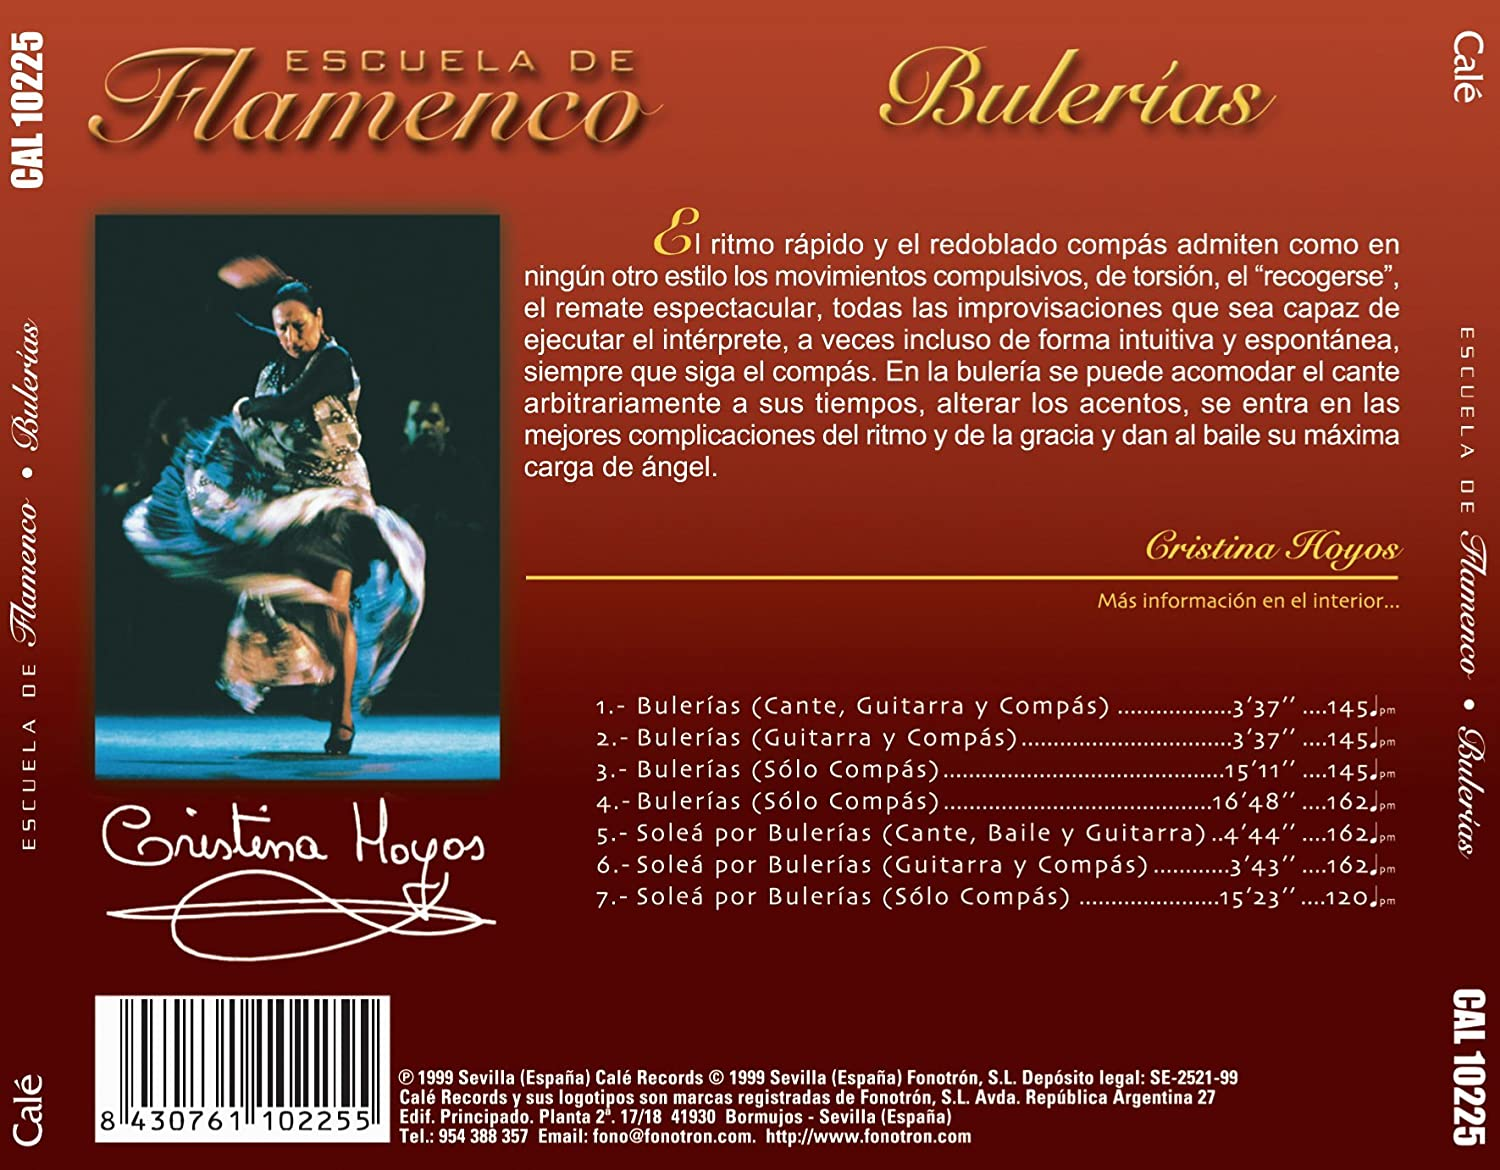 Escuela De Flamenco: Bulerias: Various Artists: Amazon.es: Música